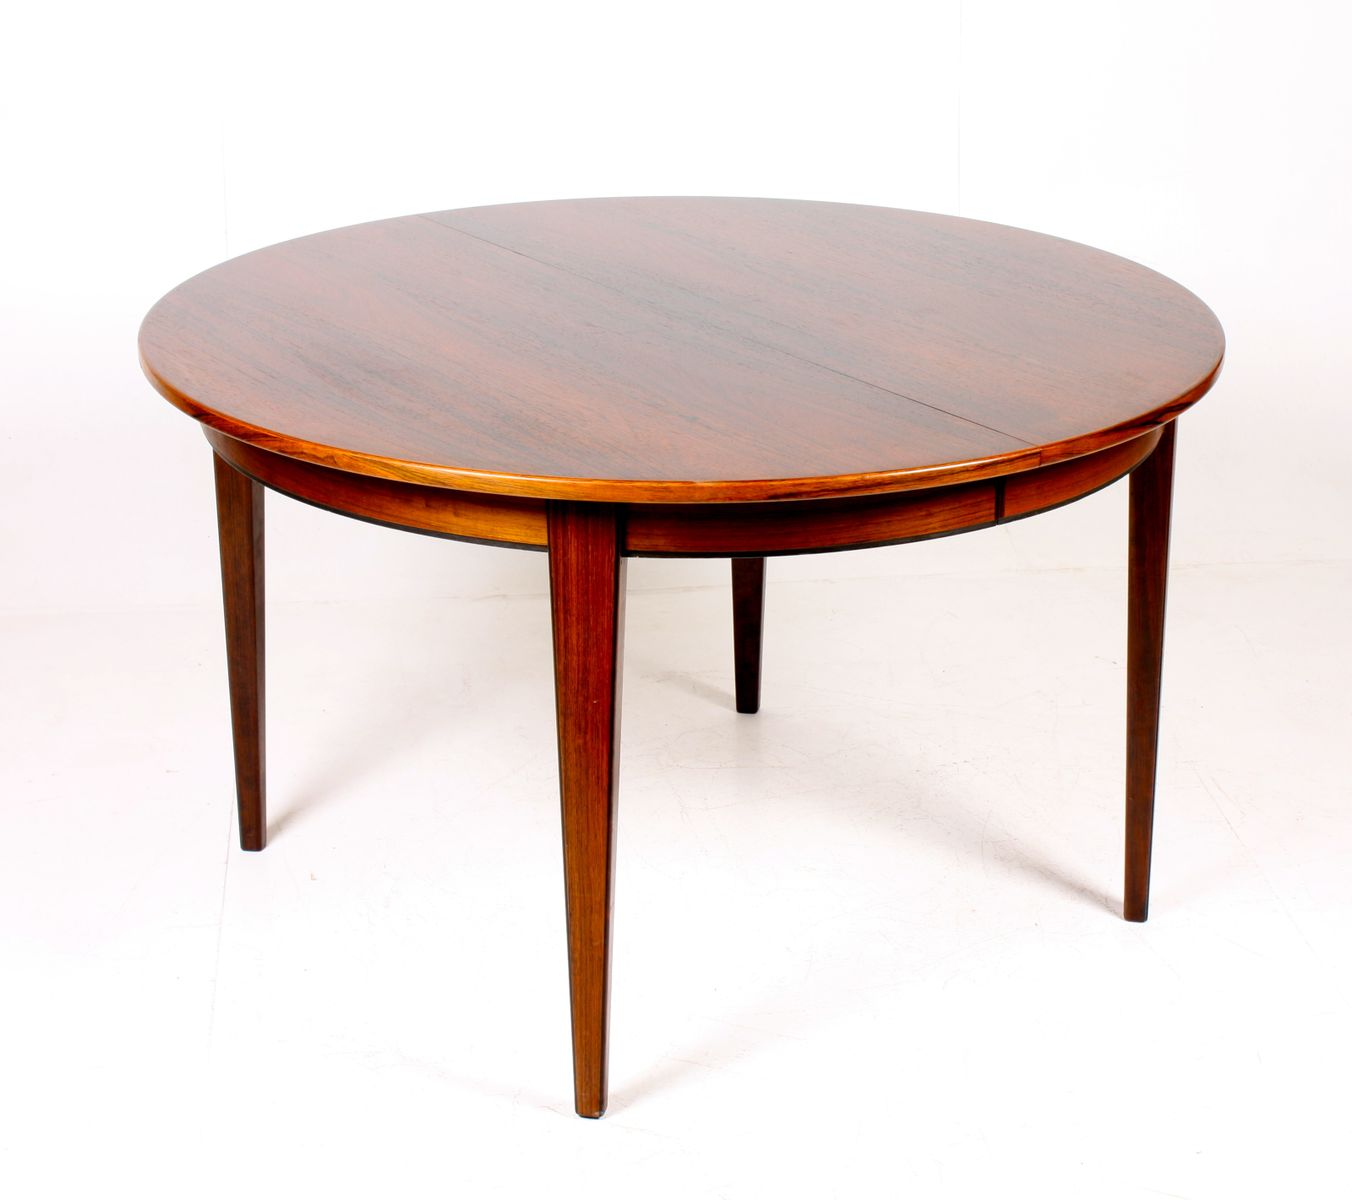 Rosewood Dining Table By Gunni Oman For Oman JUN 1950s For Sale At